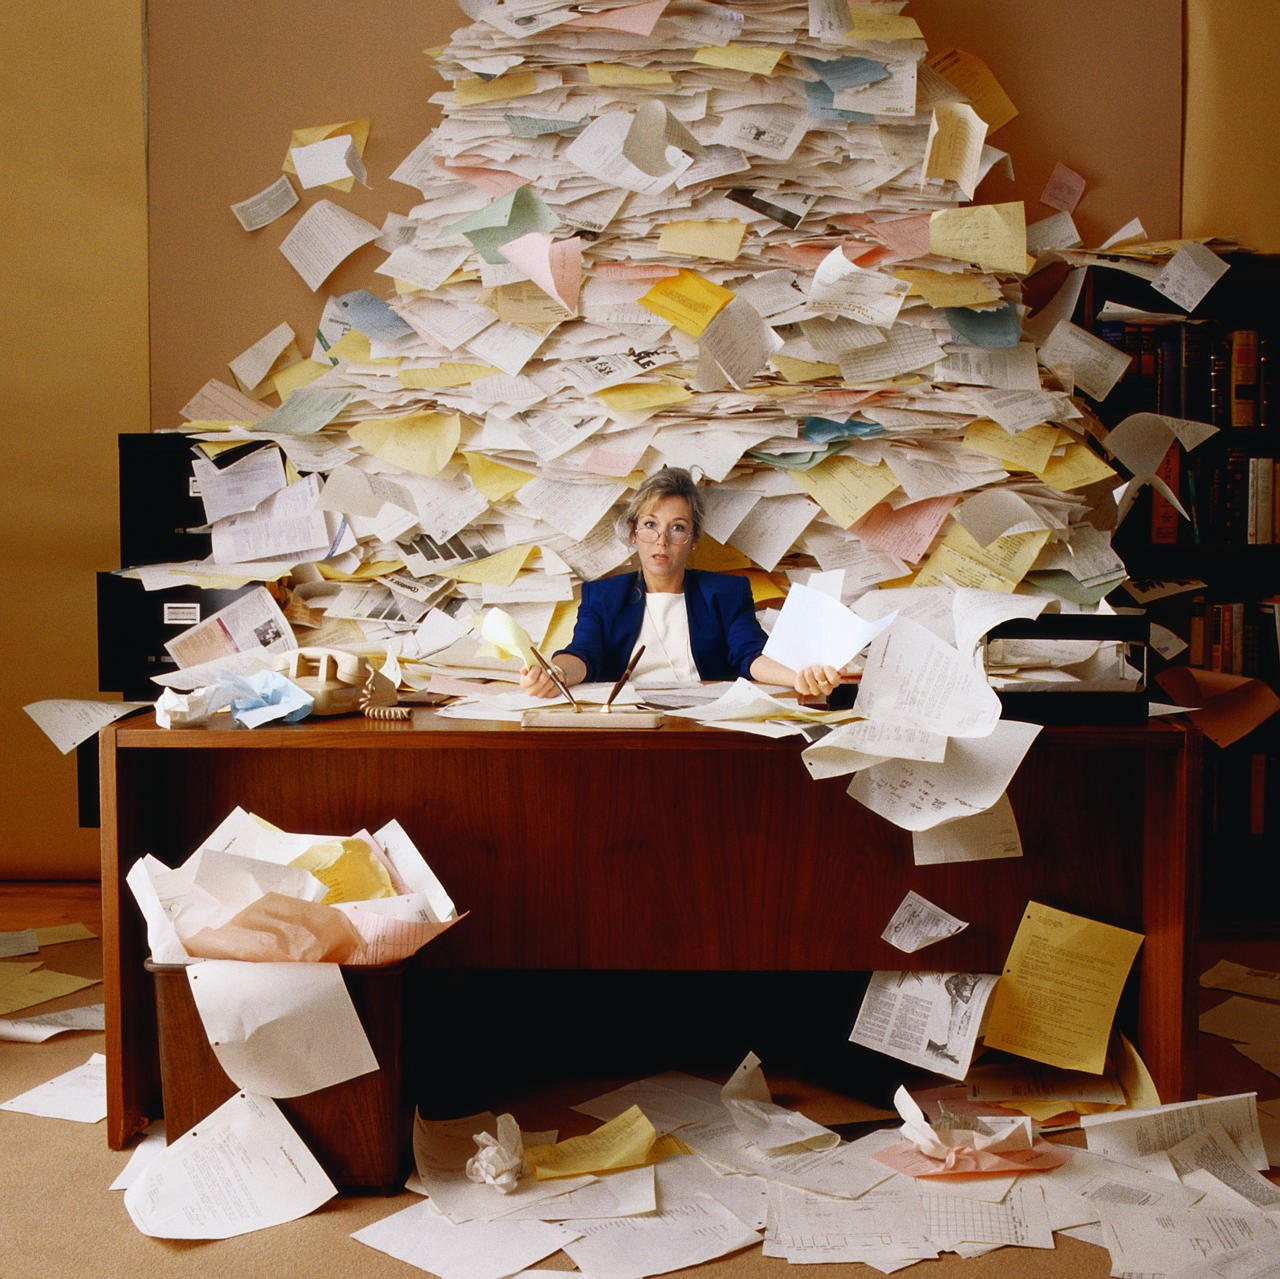 How CFOs Can Save Money by Going Paperless